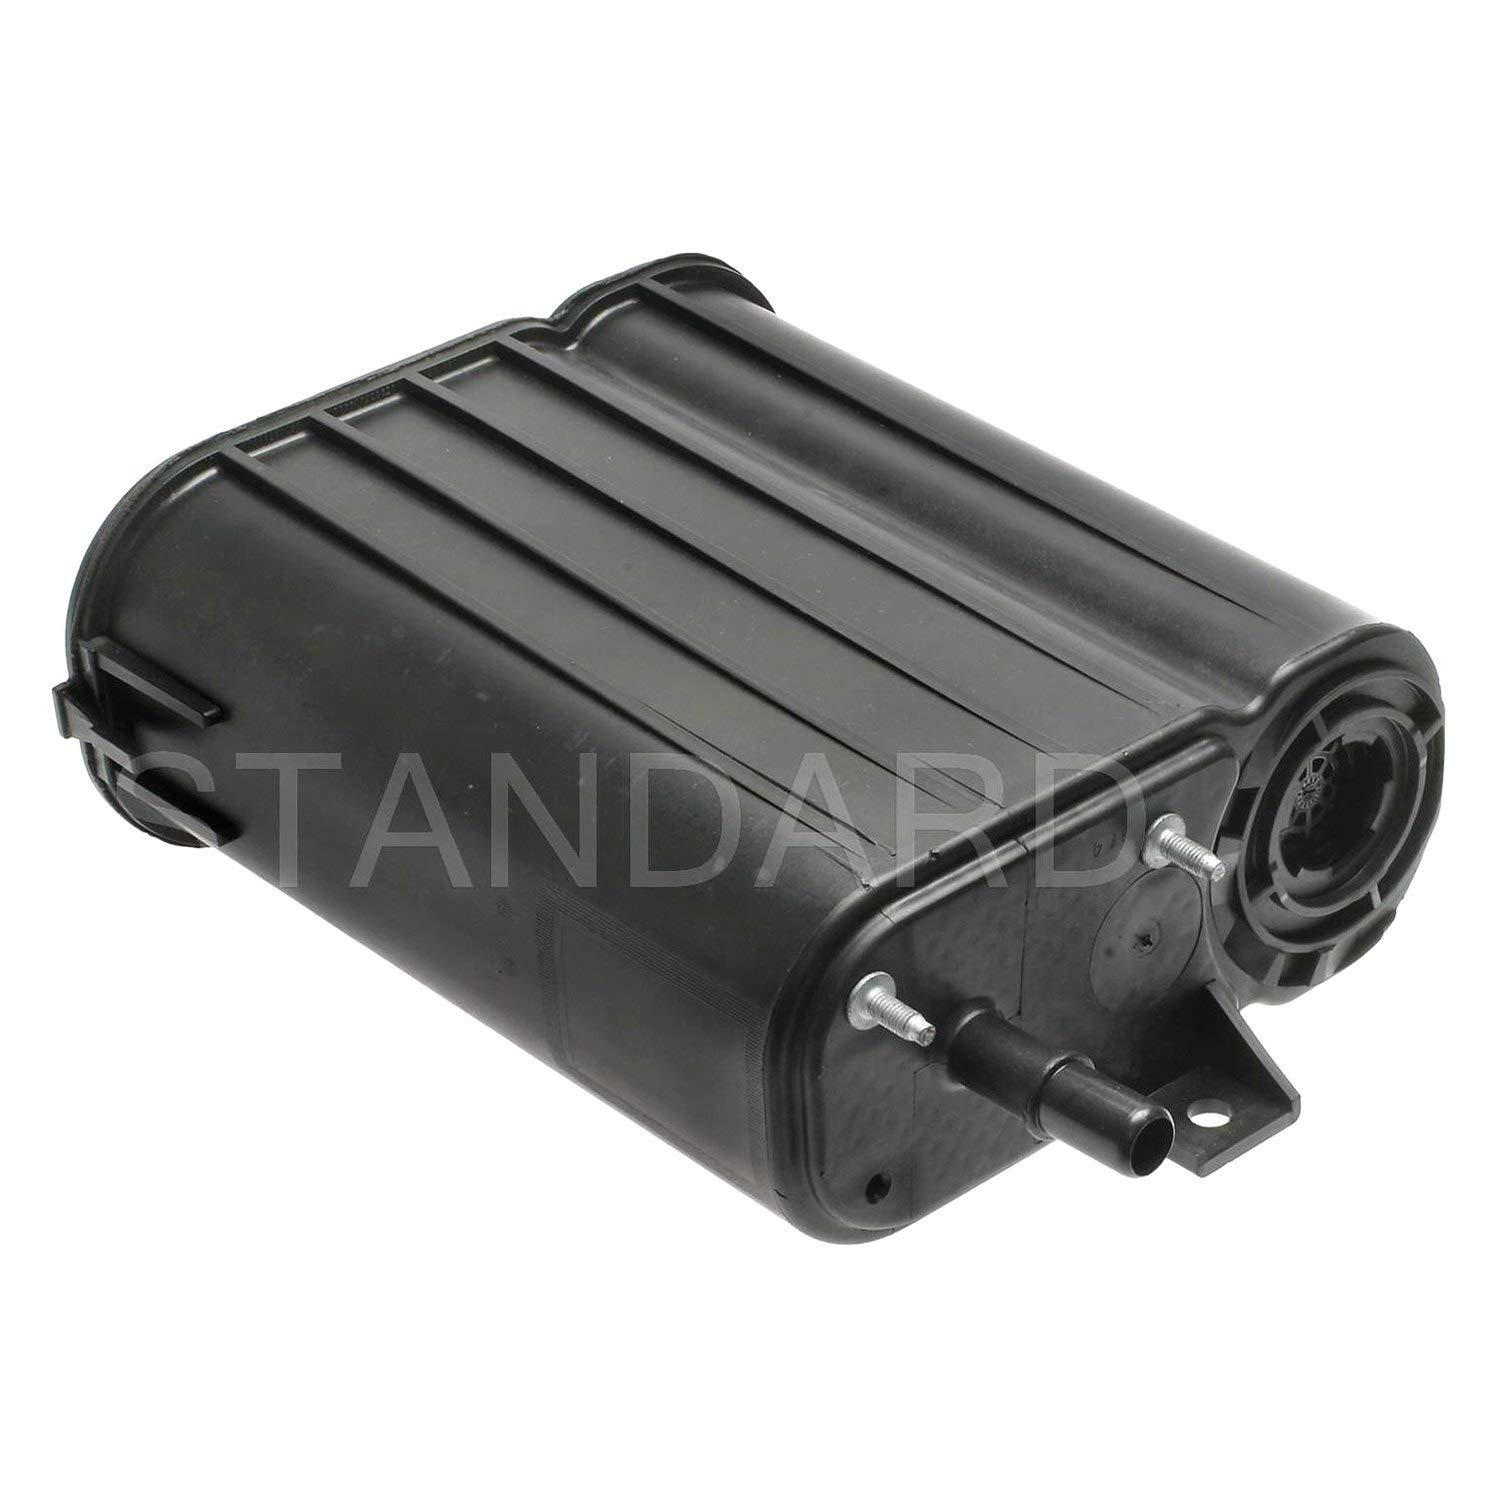 Standard Motor Products CP3154 Fuel Vapor Canister